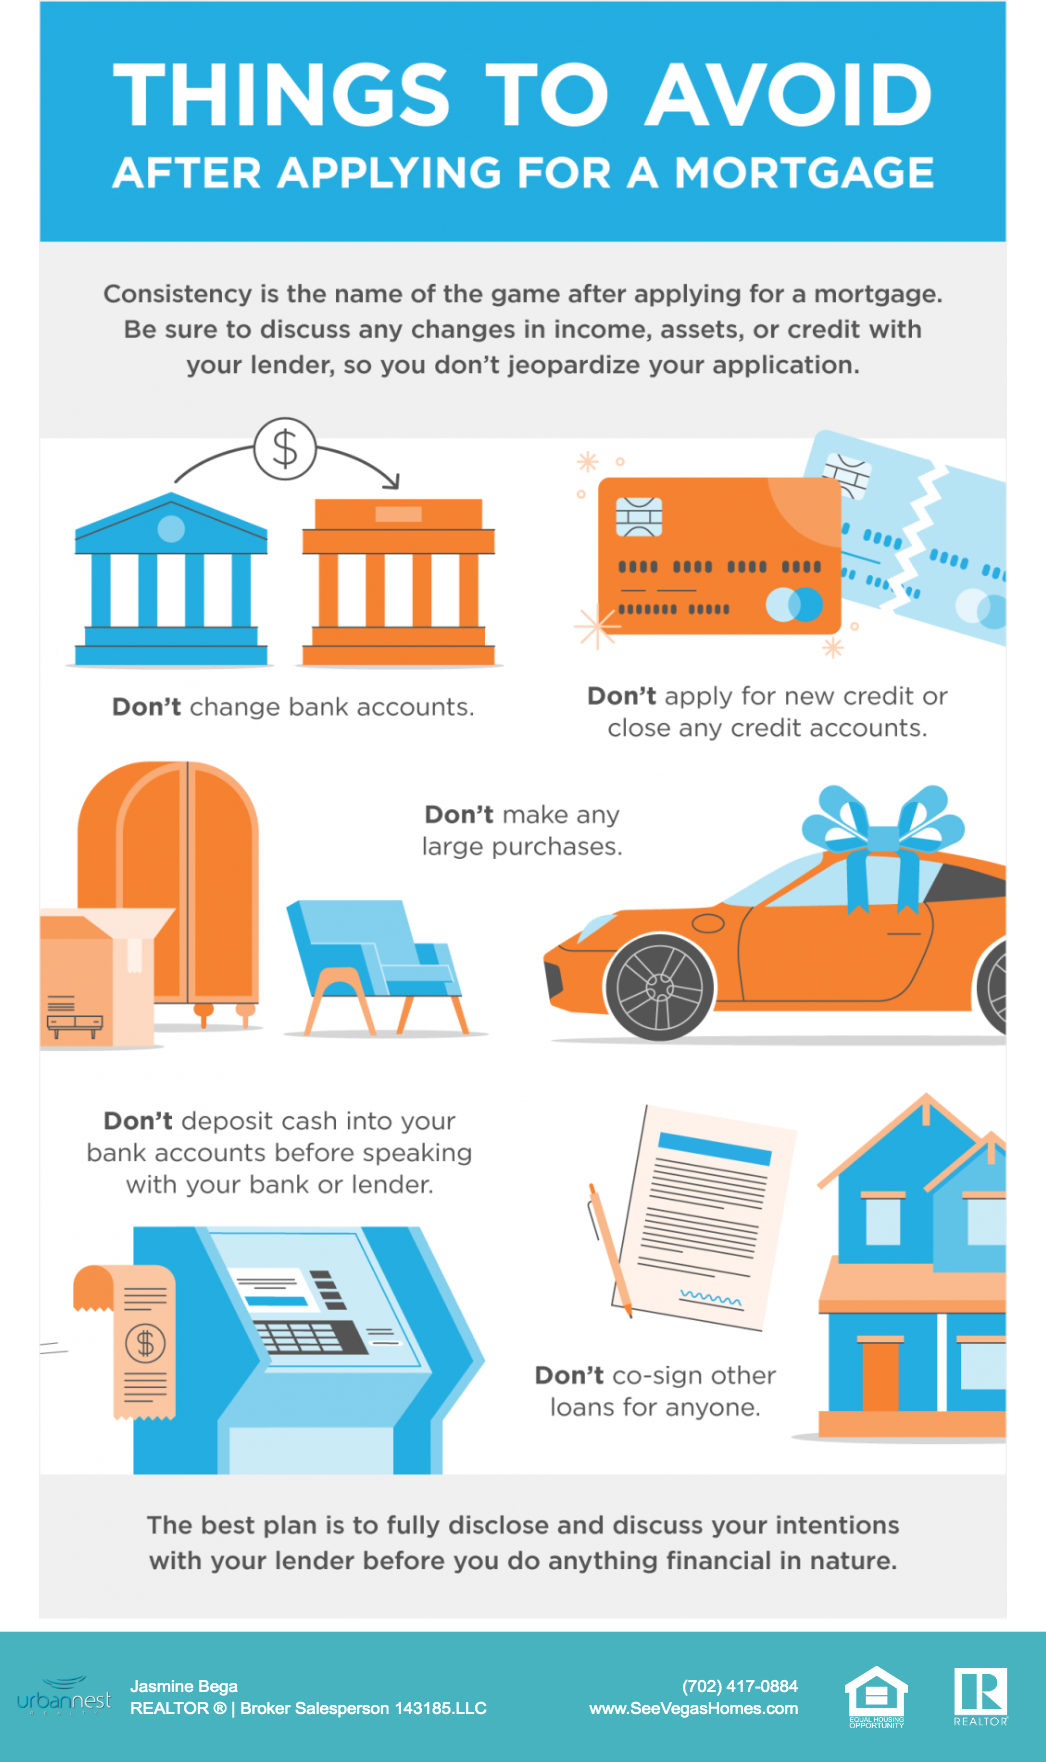 Things to Avoid after Applying for a Mortgage SeeVegasHomes